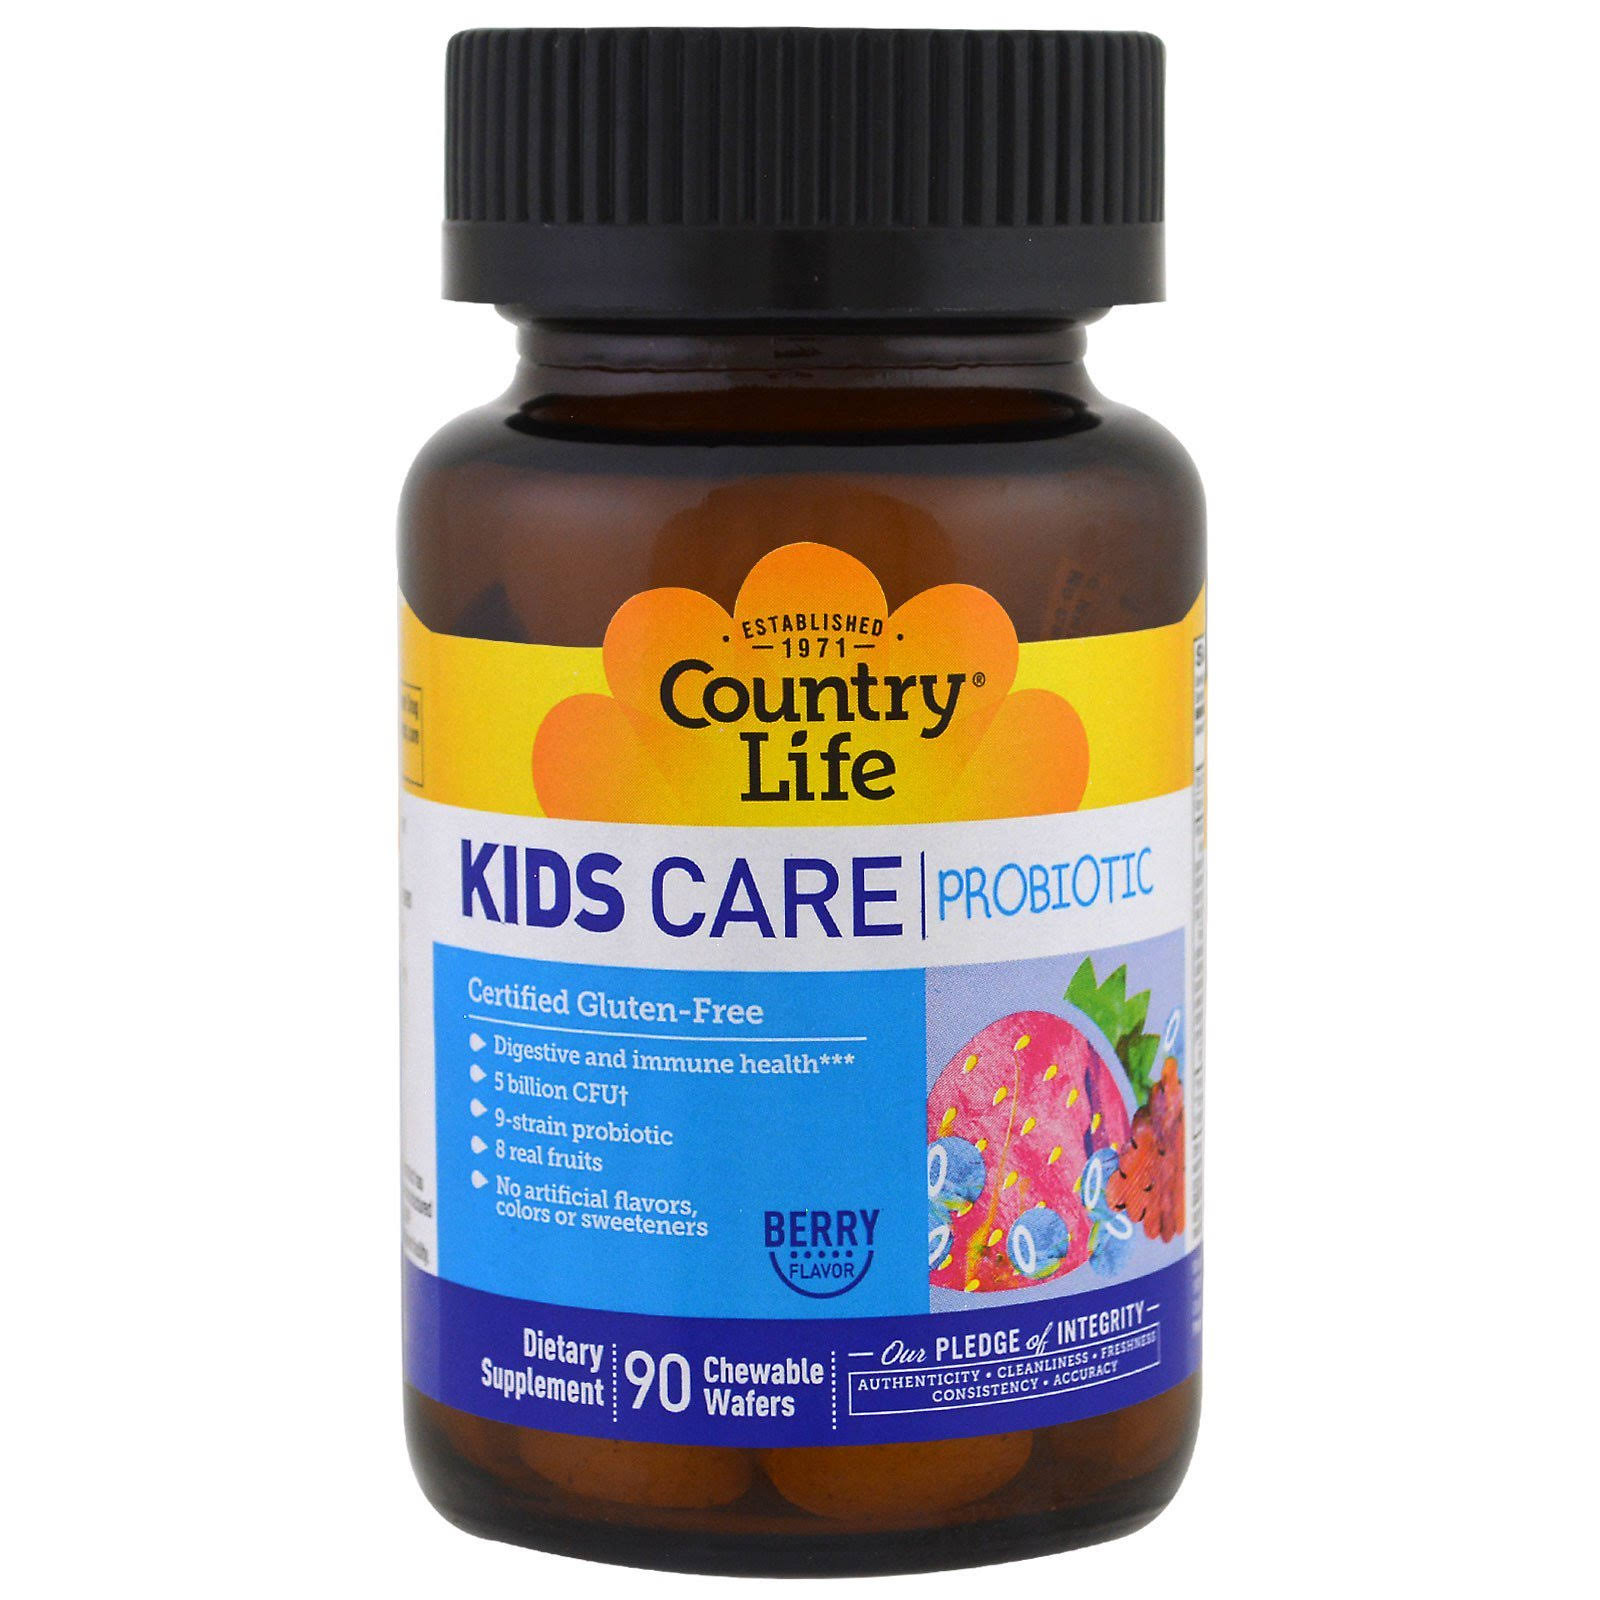 Country Life Kids Care Probiotic Dietary Supplement - Berry, 90ct